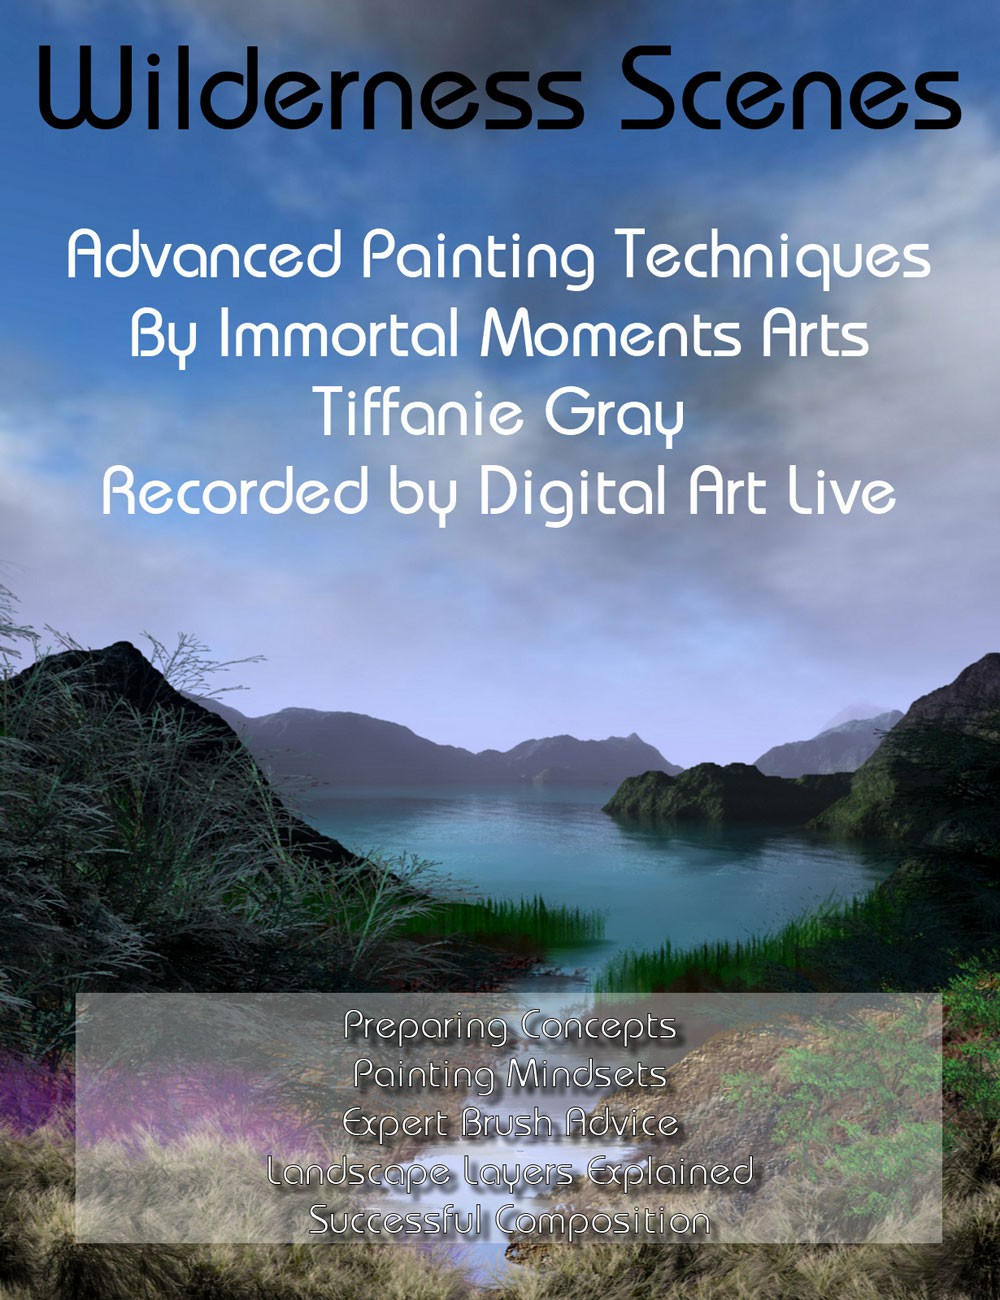 11931-wilderness-scenes-advanced-painting-techniques-video-main (1).jpg